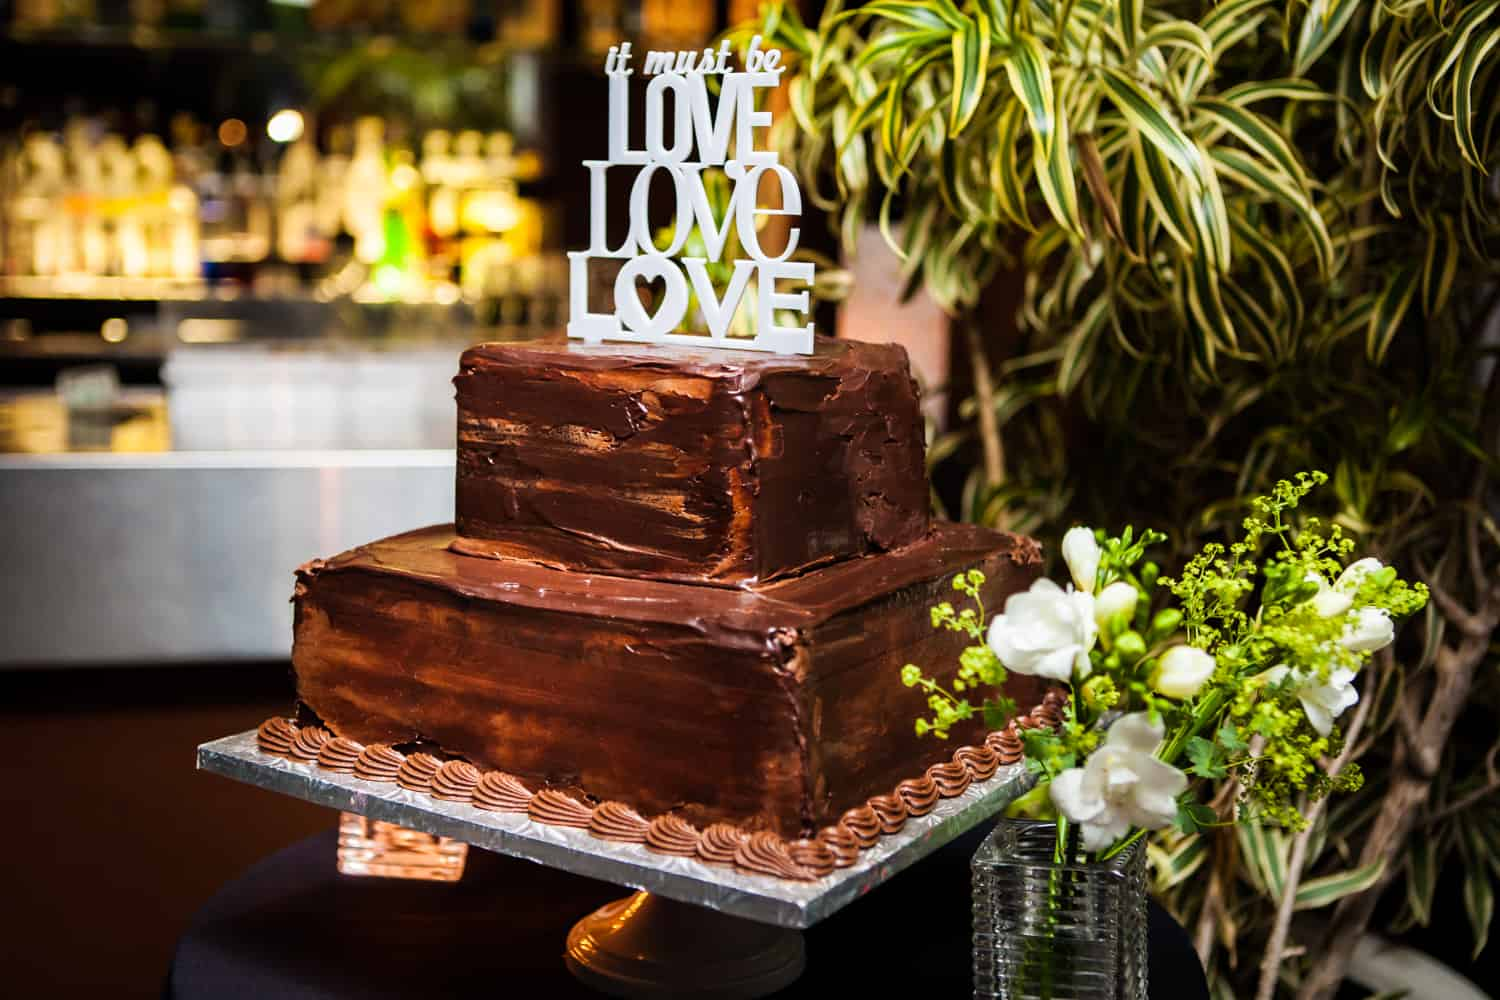 Chocolate, two-layer wedding cake with 'Love, Love, Love' topper